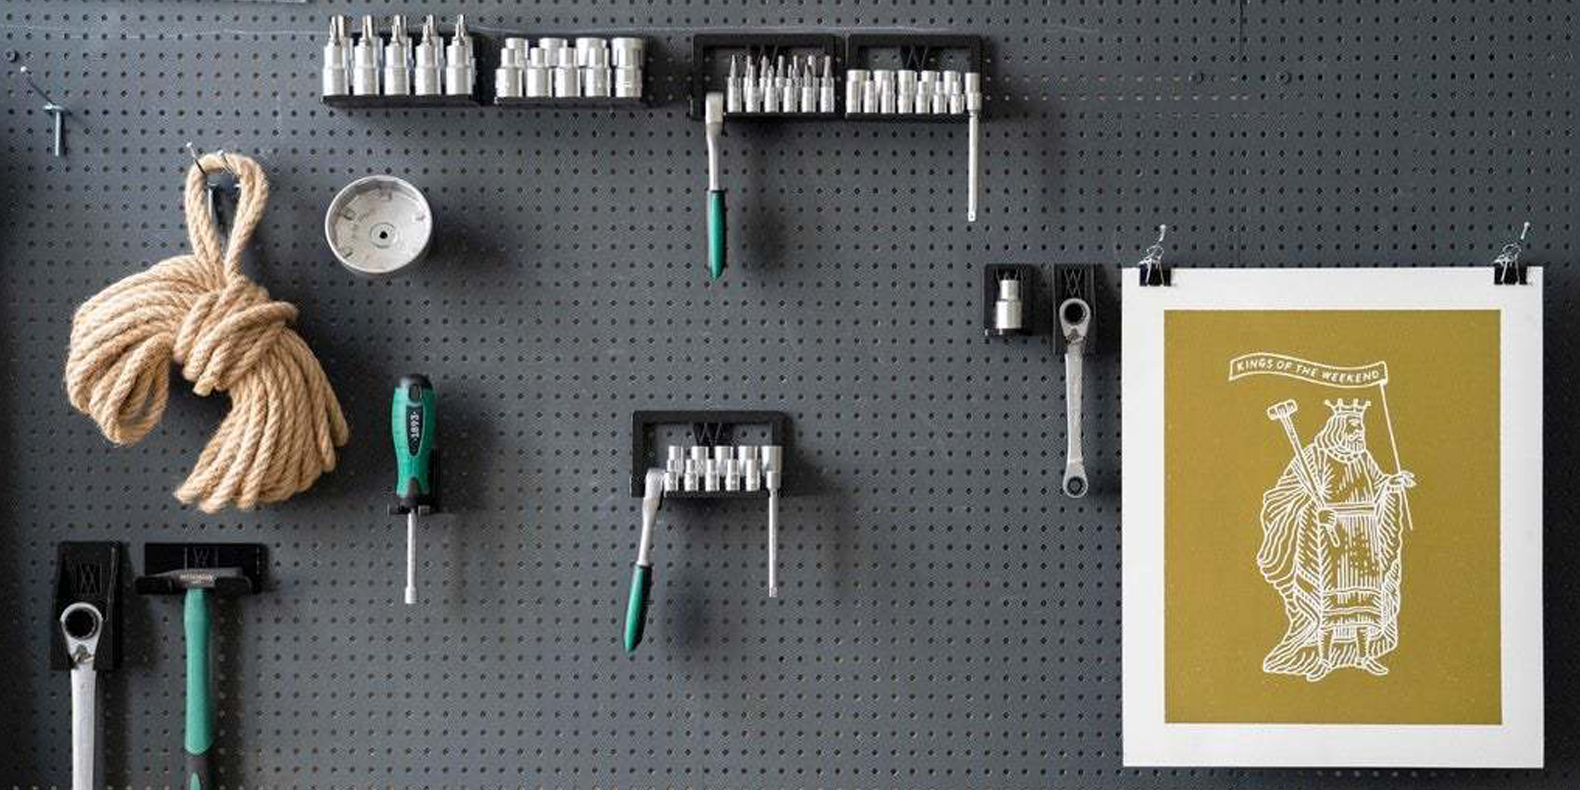 Here is a selection of the best 3D printable STL files for 3D printer to organize your pegboard